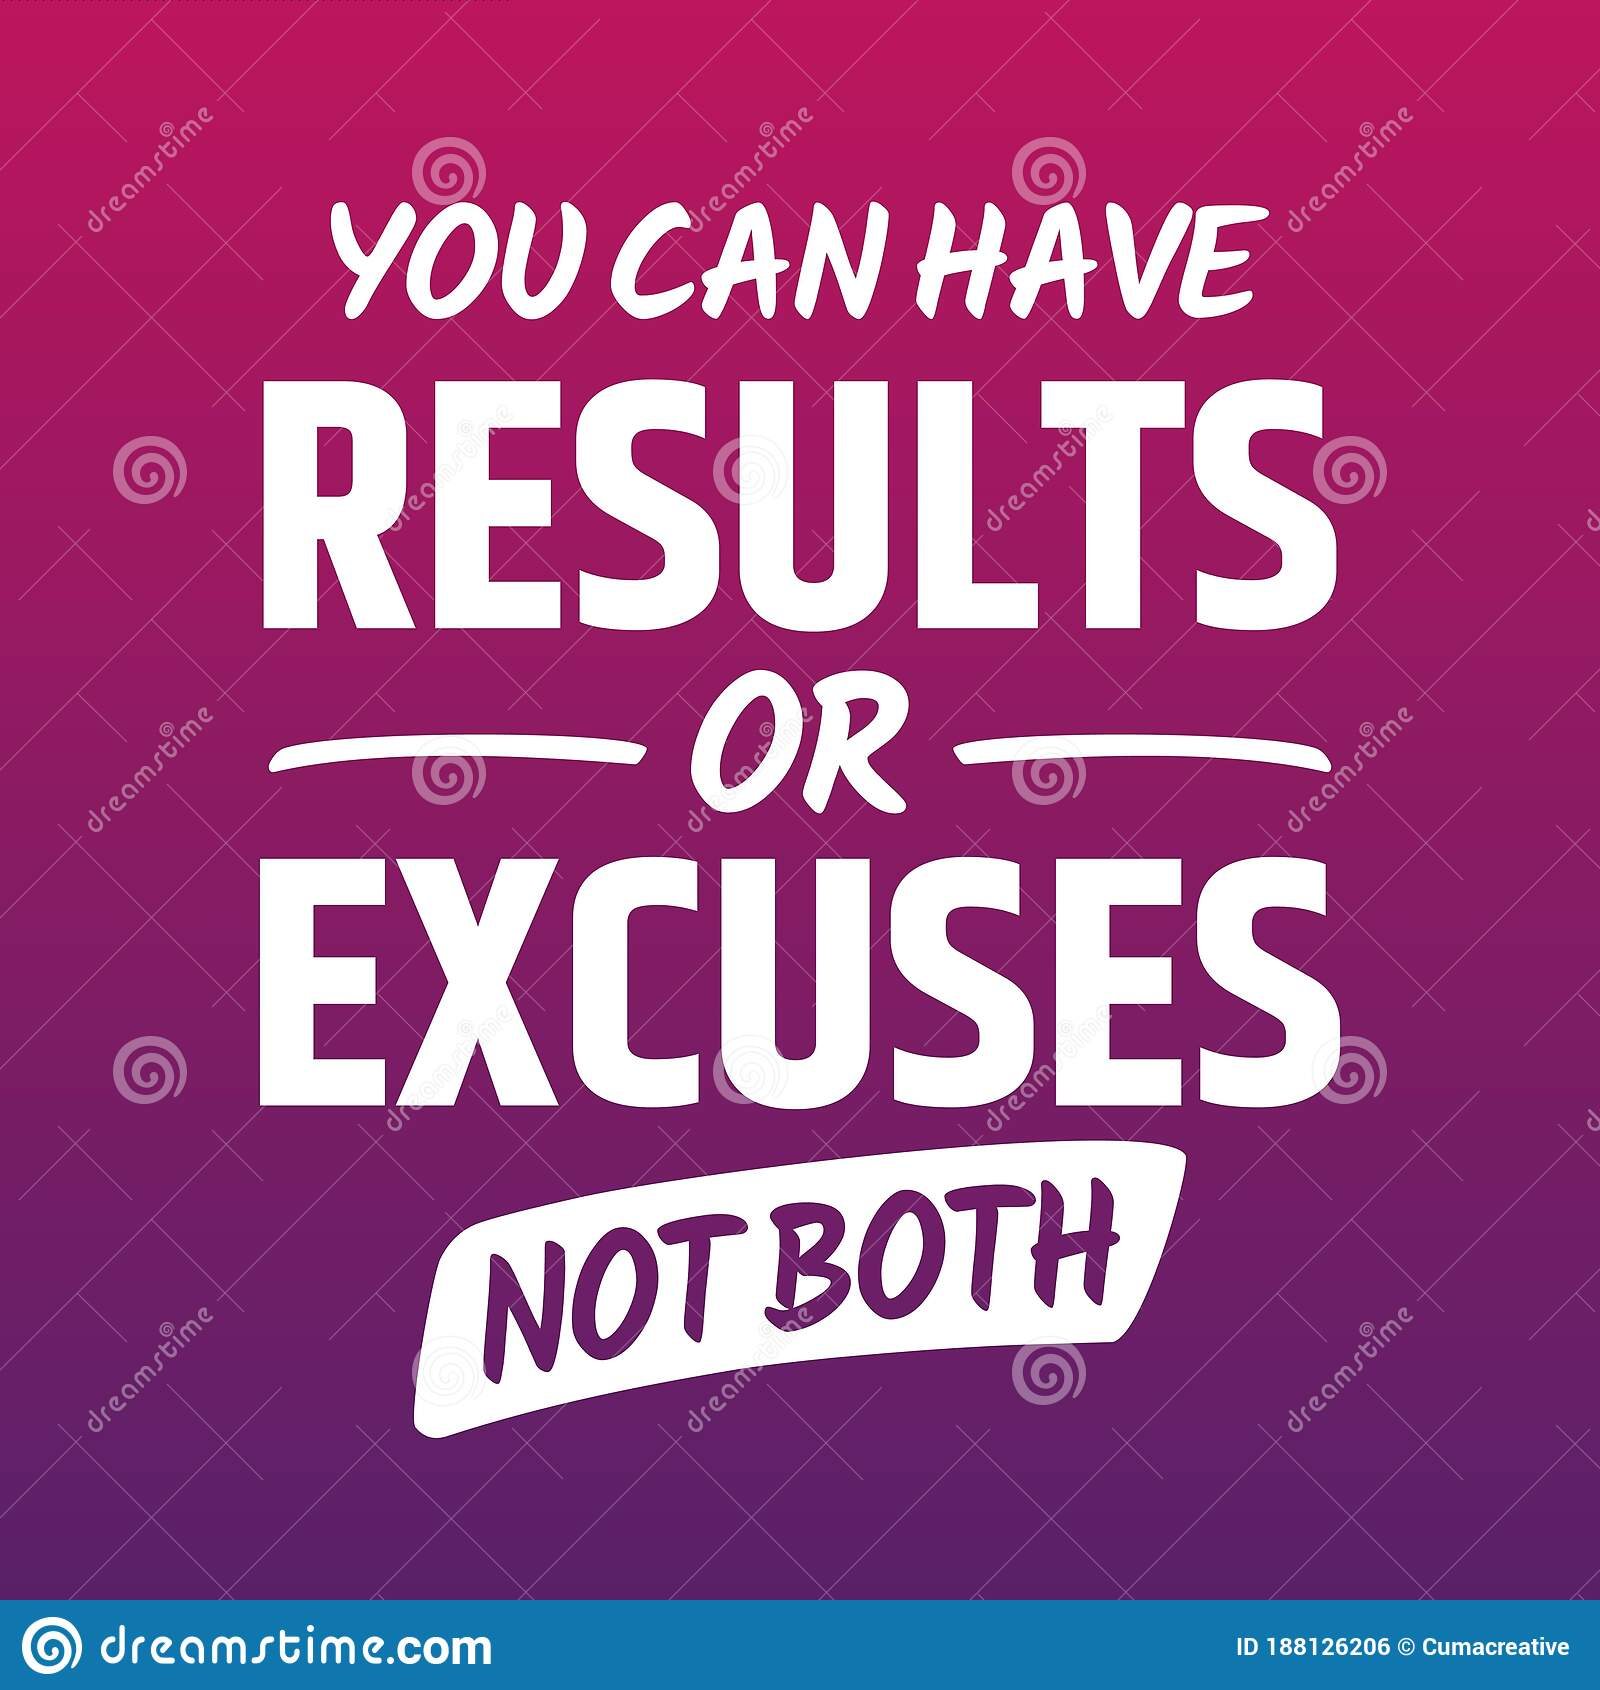 Fitness Motivational Quotes For Athletes You Can Have Results Or Excuses Not Both Stock Vector Illustration Of Poster Healthy 188126206